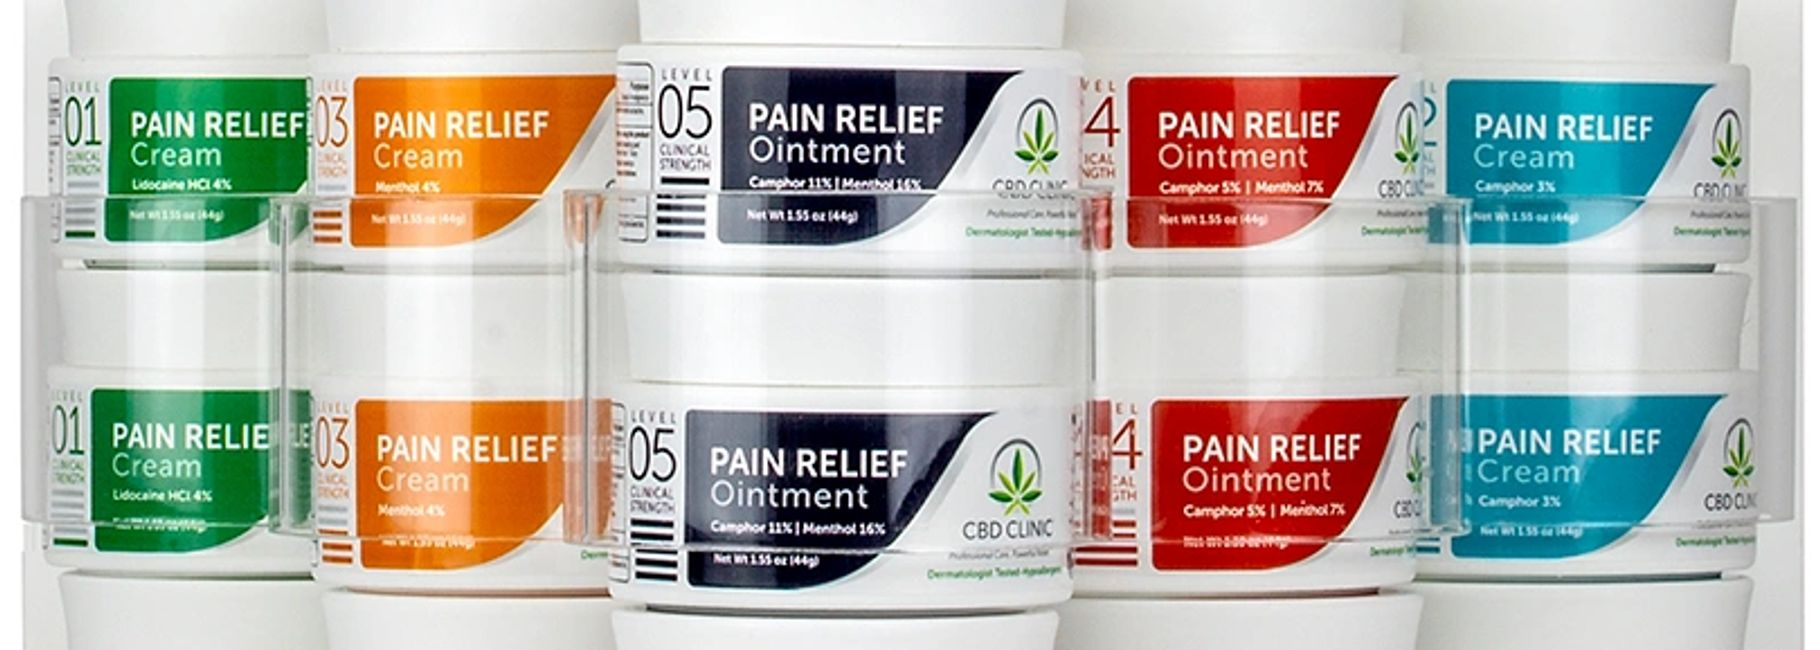 CBD pain relief ointment and cream levels 1 through 5.